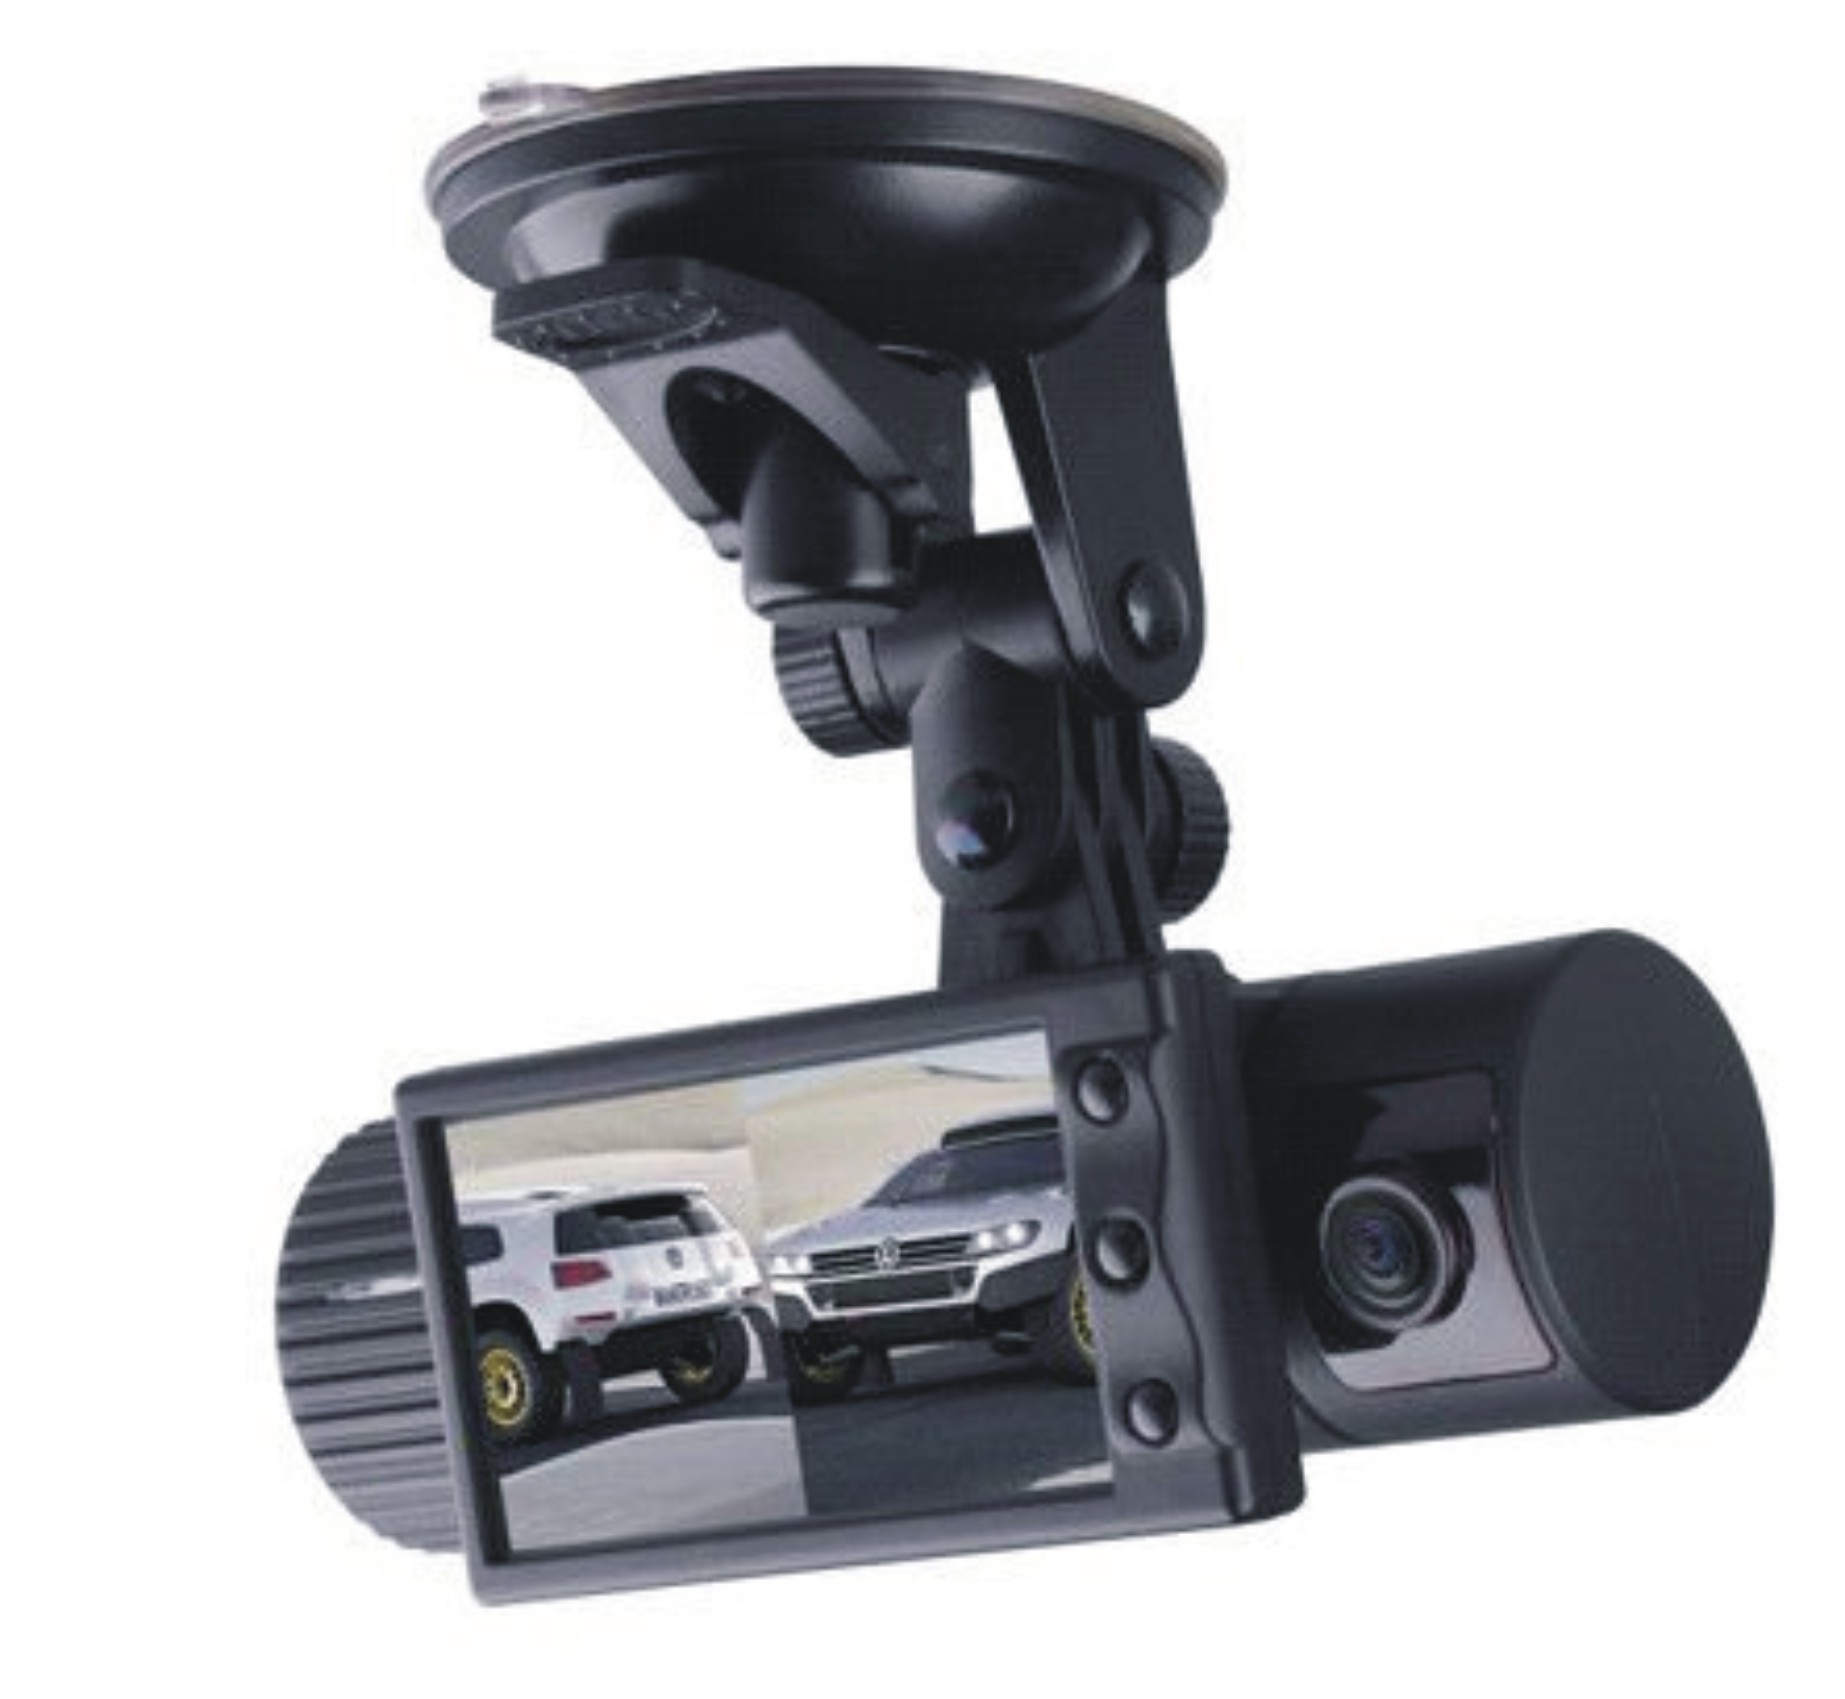 Dual Lens Dashboard Camera In Arrah